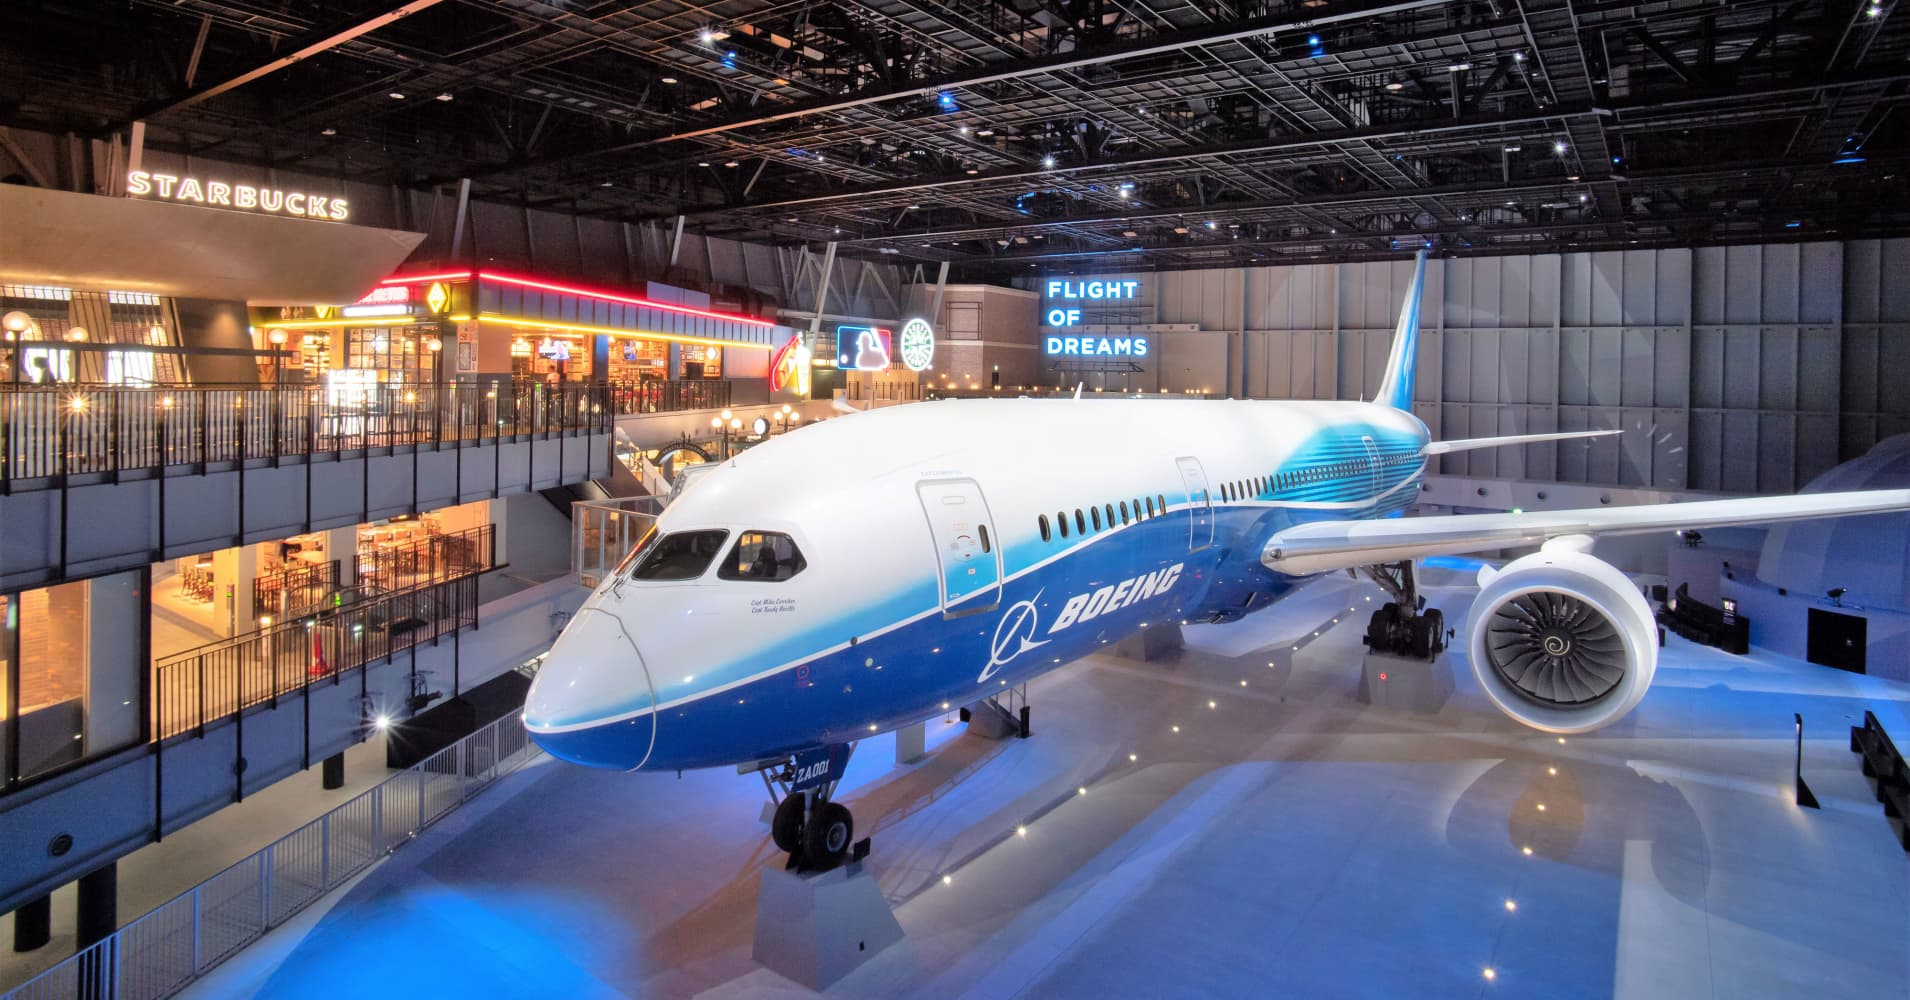 The first Boeing 787 Dreamliner test plane is the centerpiece of an aviation-themed park at a Japanese airport.